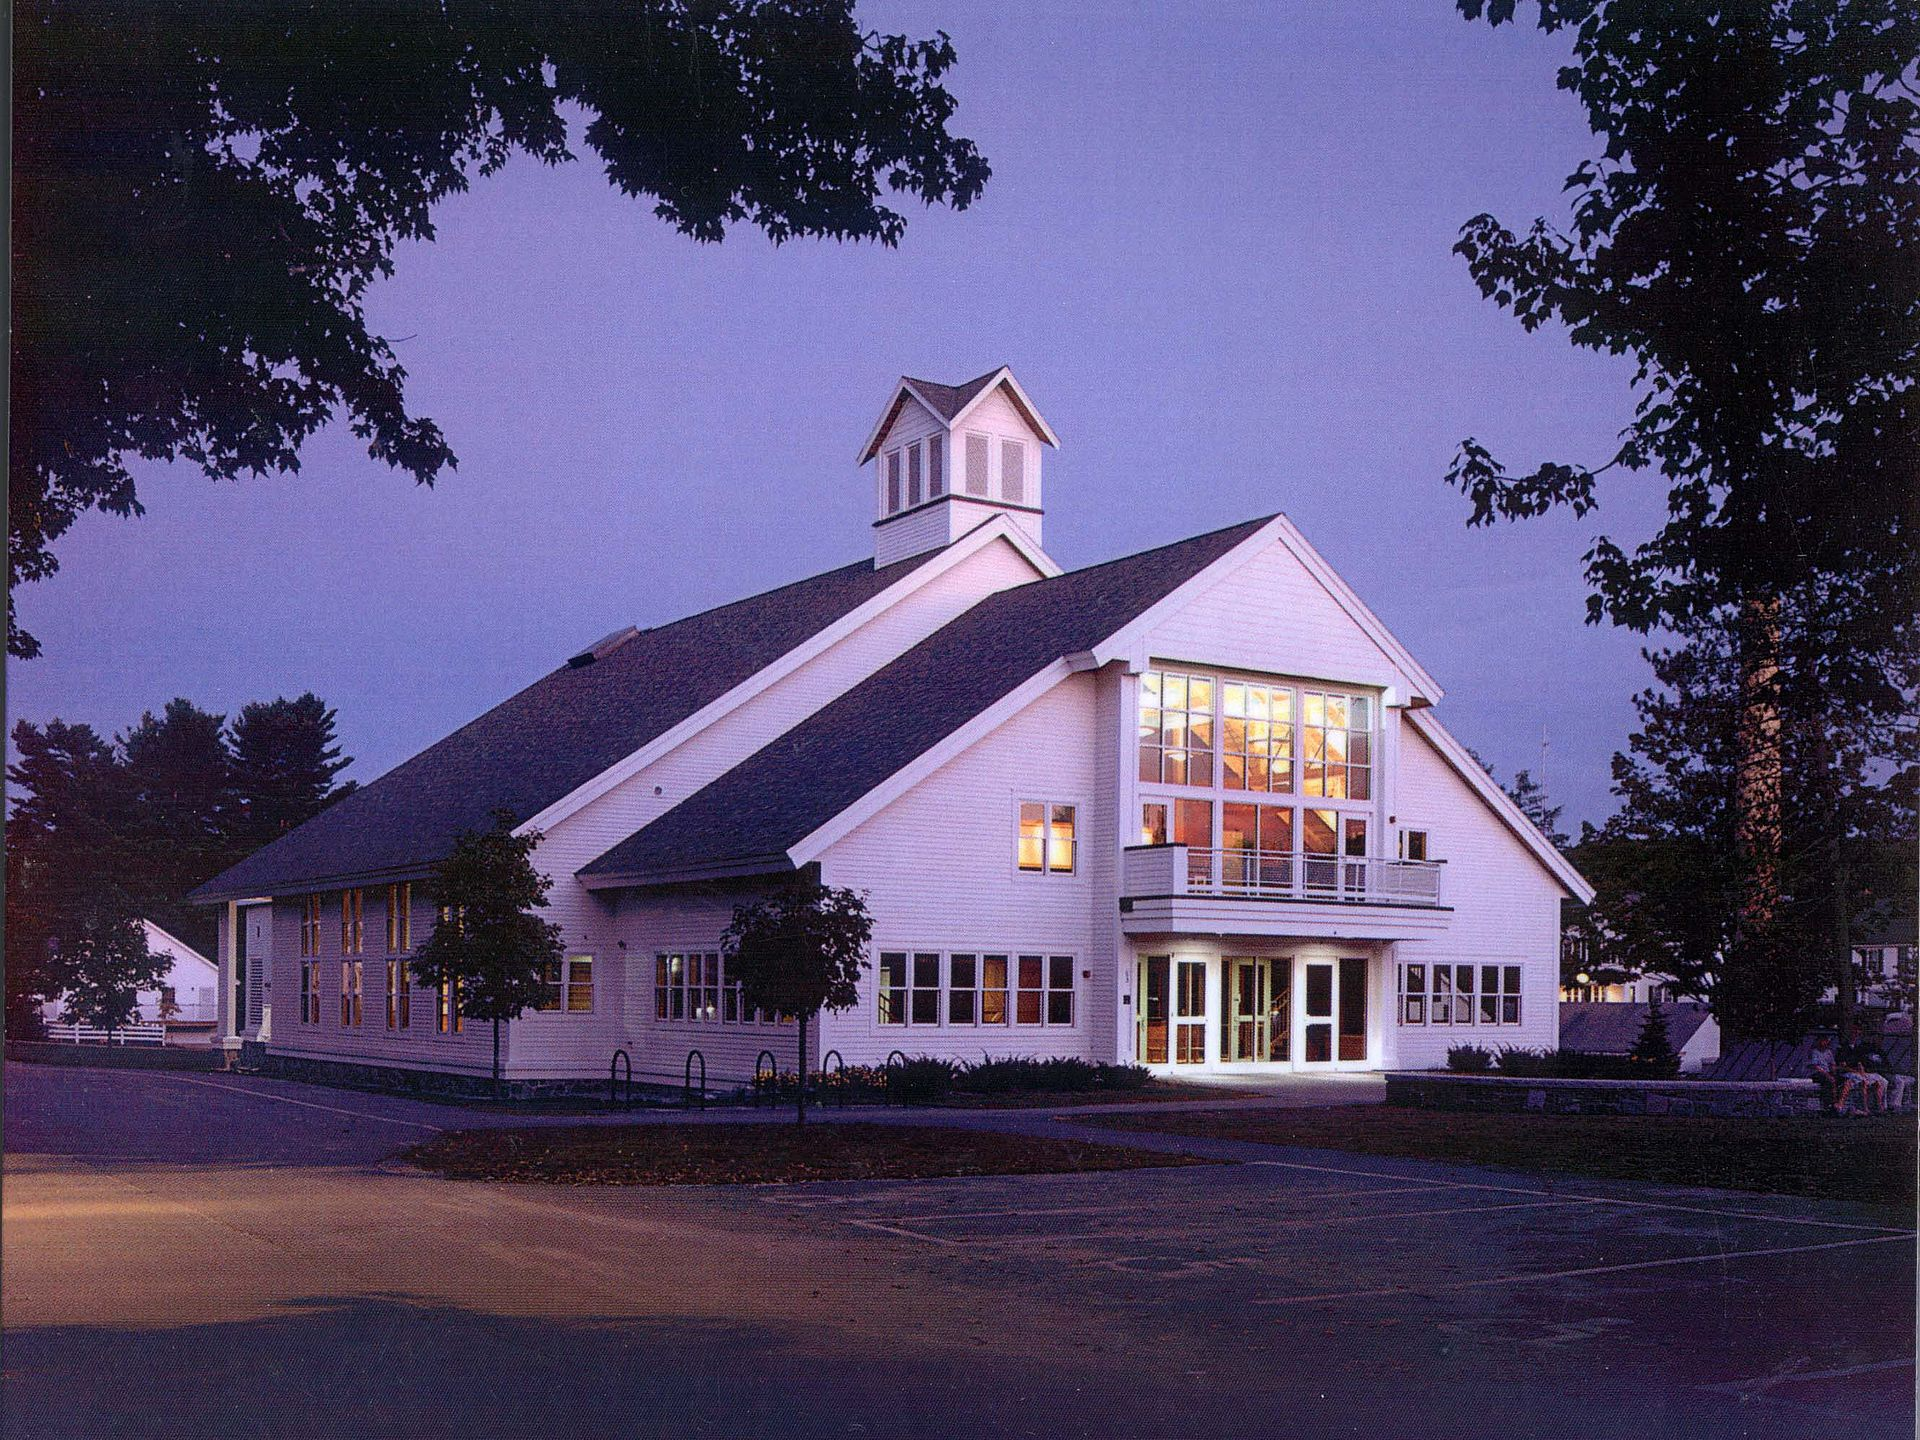 Proctor Academy Theater & Meeting House